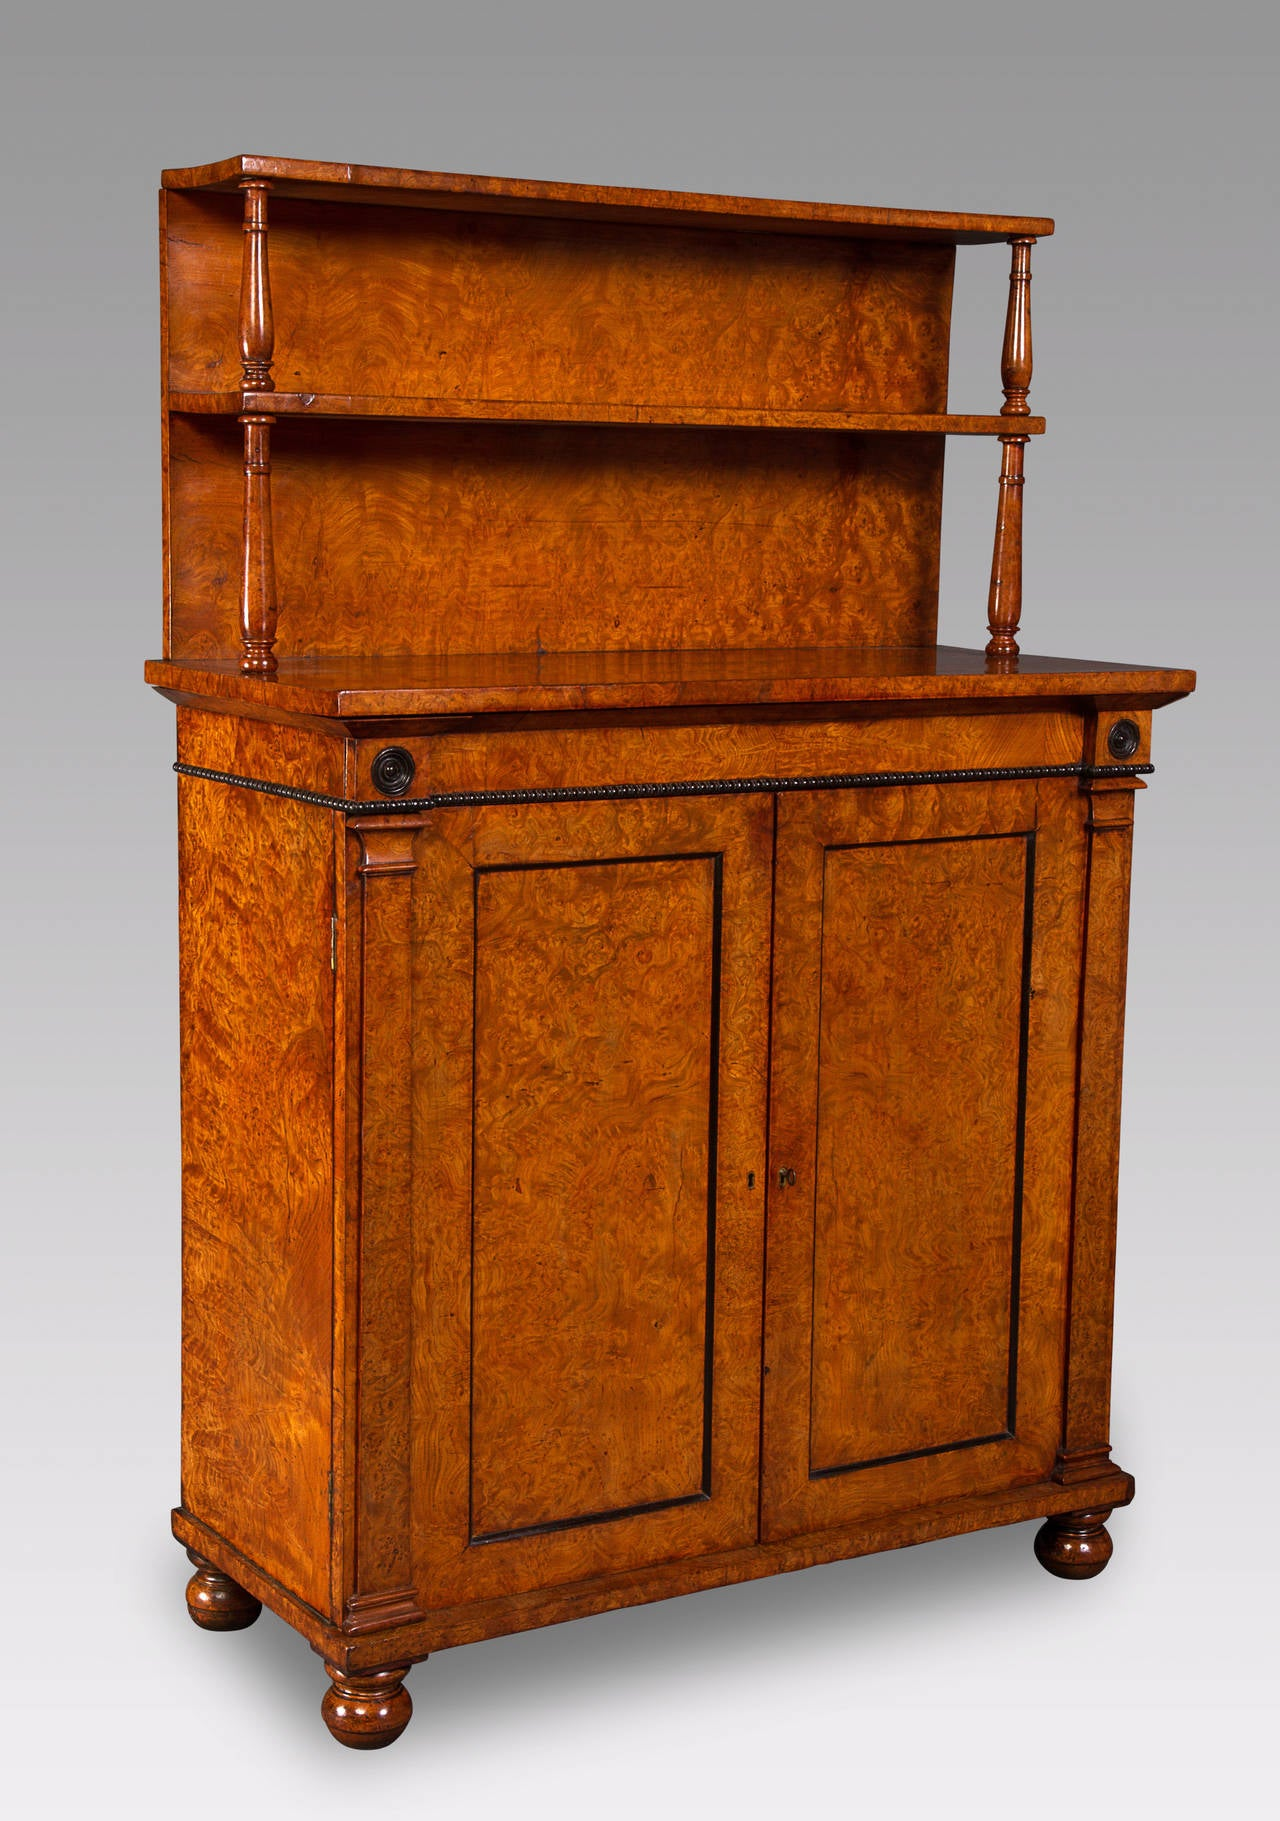 The late 18th and early 19th century saw the re-emerging use of indigenous timbers in the construction for fine British furniture with George Bullock in England and William Trotters in Edinburgh, Scottland being the most prominent proponents of